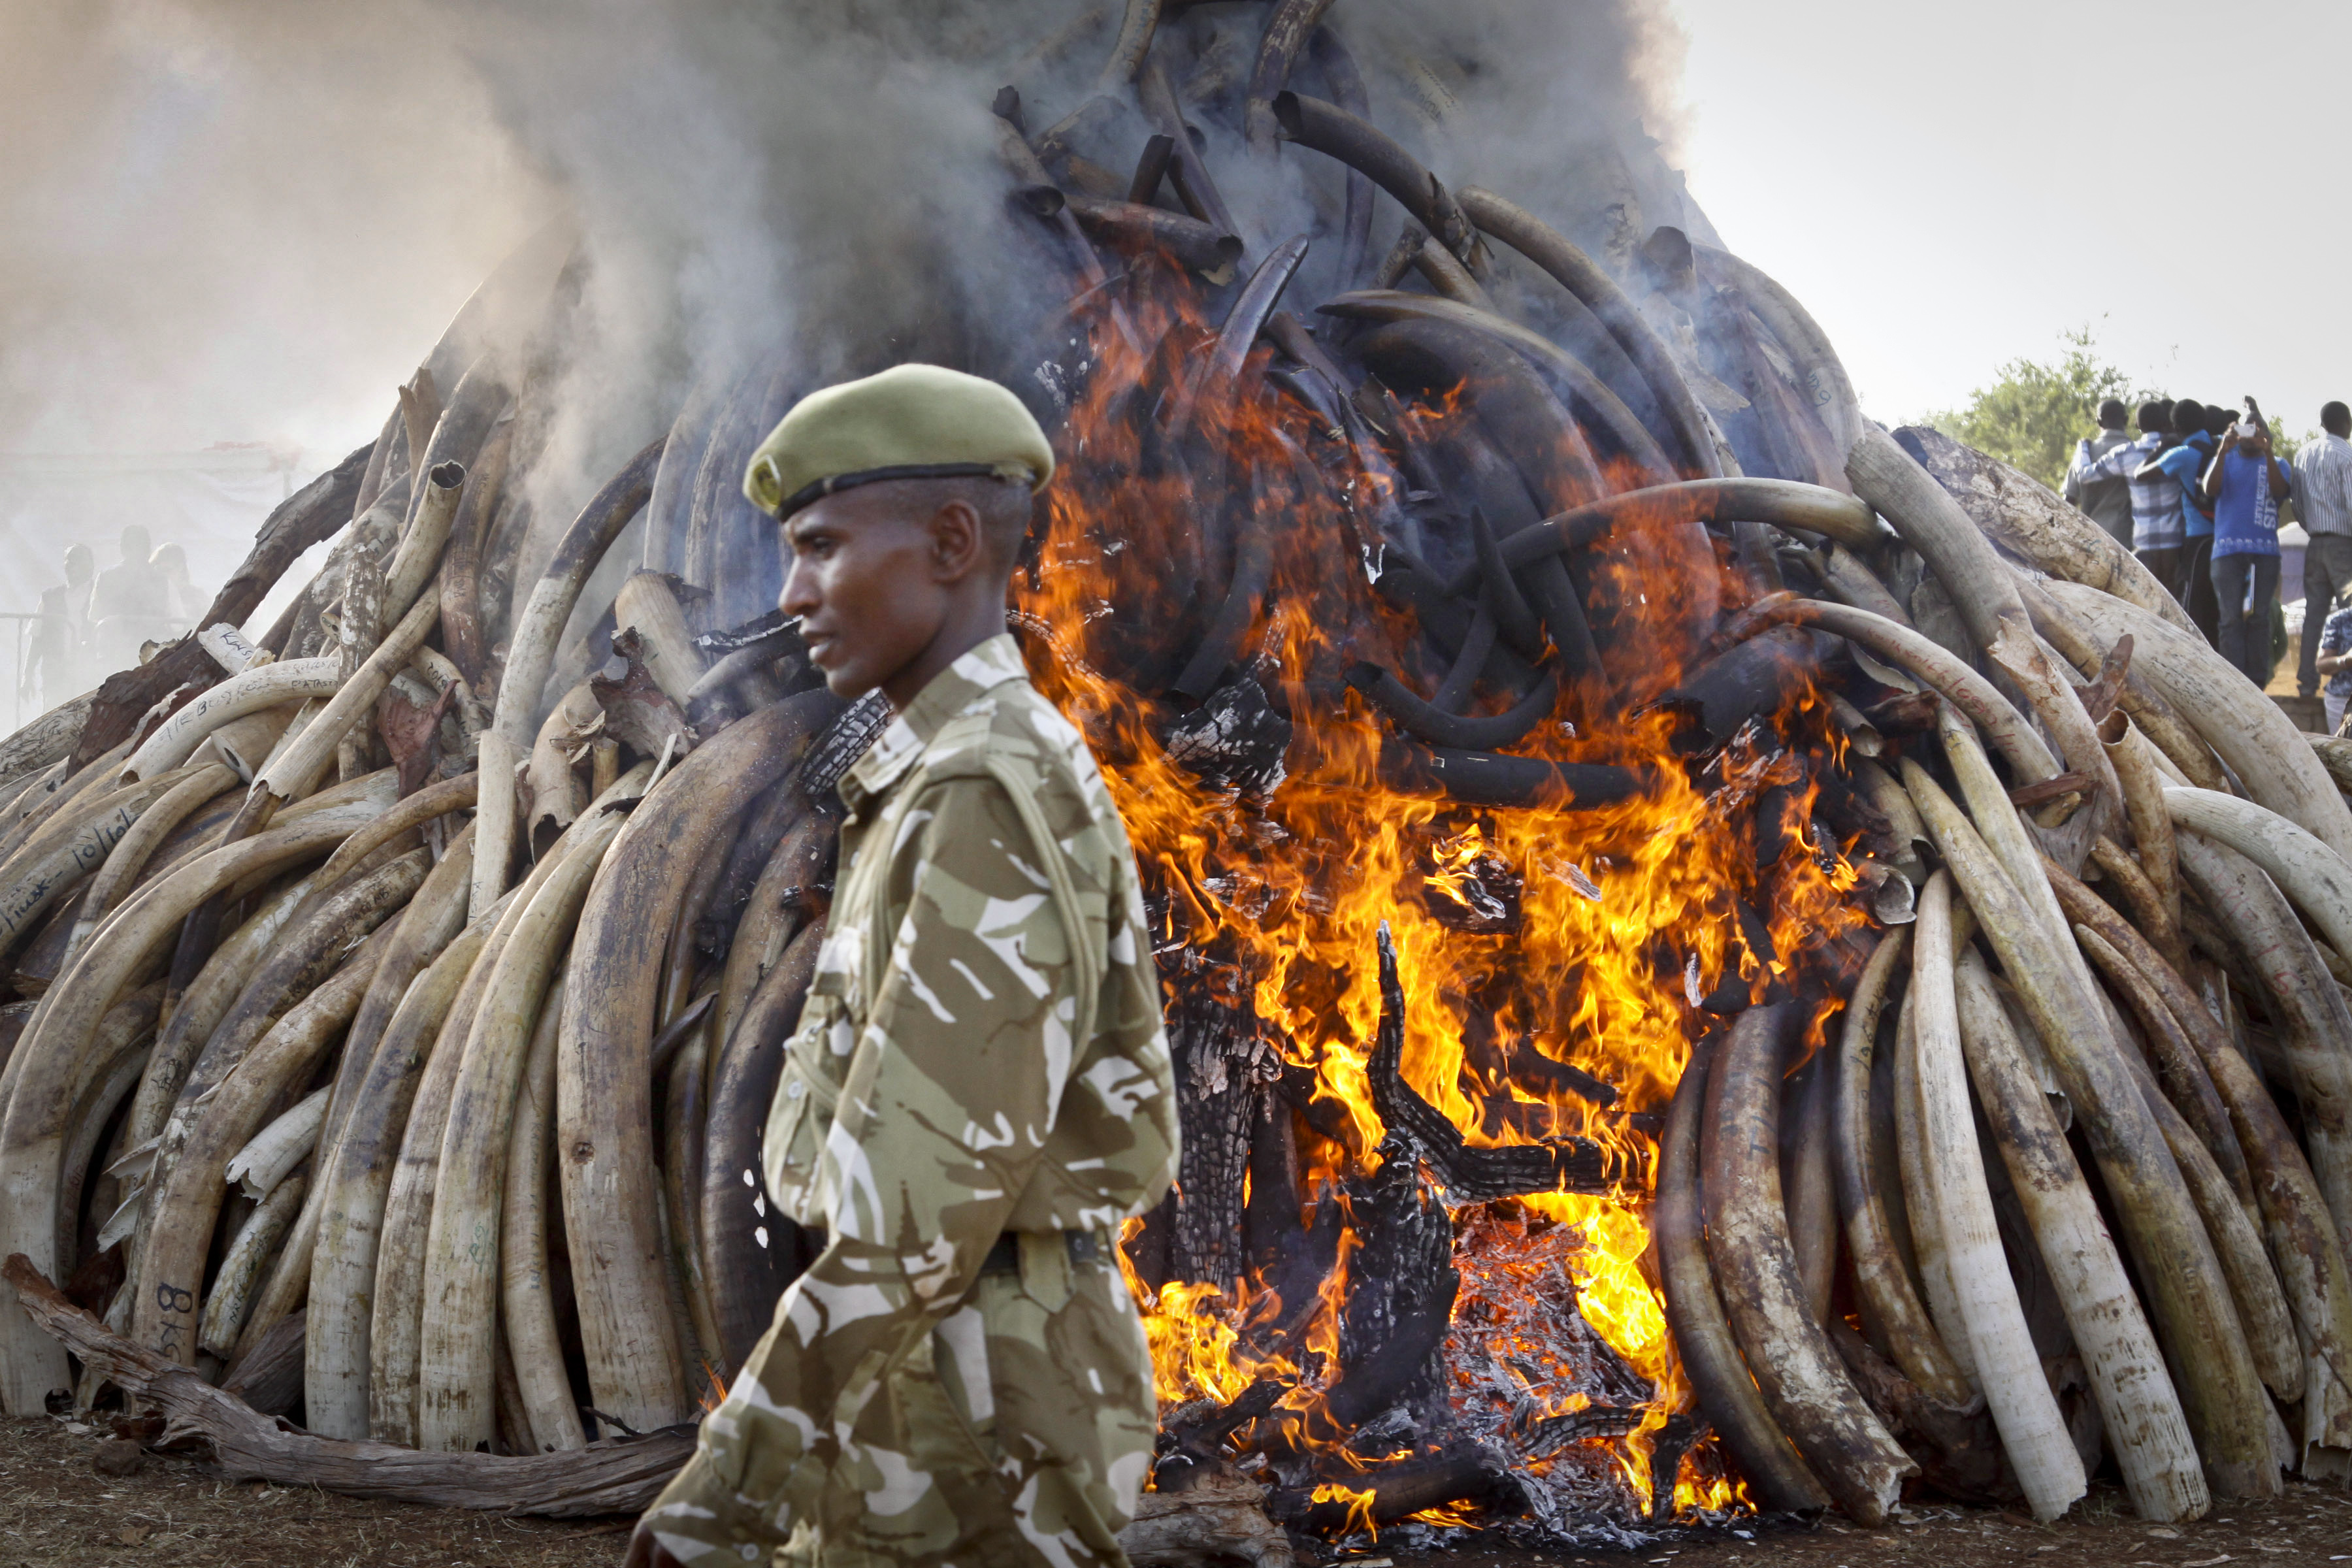 A ranger from the Kenya Wildlife Service walks past 15 tons of elephant tusks which were set on fire, during an anti-poaching ceremony at Nairobi National Park in Nairobi, Kenya Tuesday, March 3, 2015. Kenyan President Uhuru Kenyatta set fire to the elephant ivory during World Wildlife Day to discourage poaching, saying that 25 years after the historic banning of the ivory trade, new demand from emerging markets is threatening Africa's elephants and rhinos. (AP Photo/Khalil Senosi)